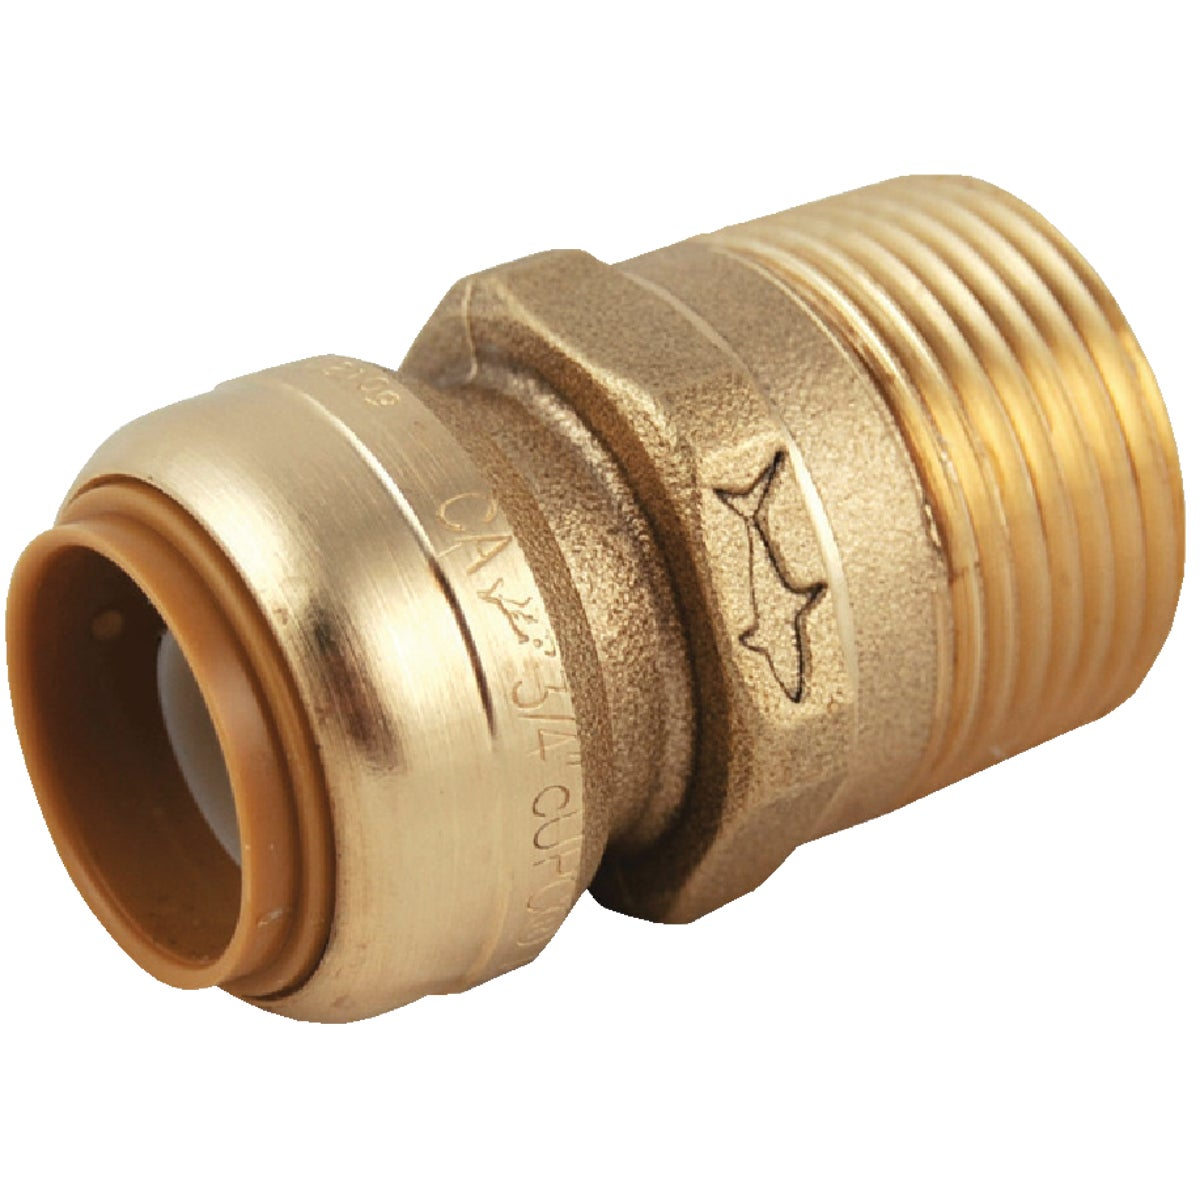 1X3/4 MIP PUSH ADAPTER - U142LFA by Cash Acme